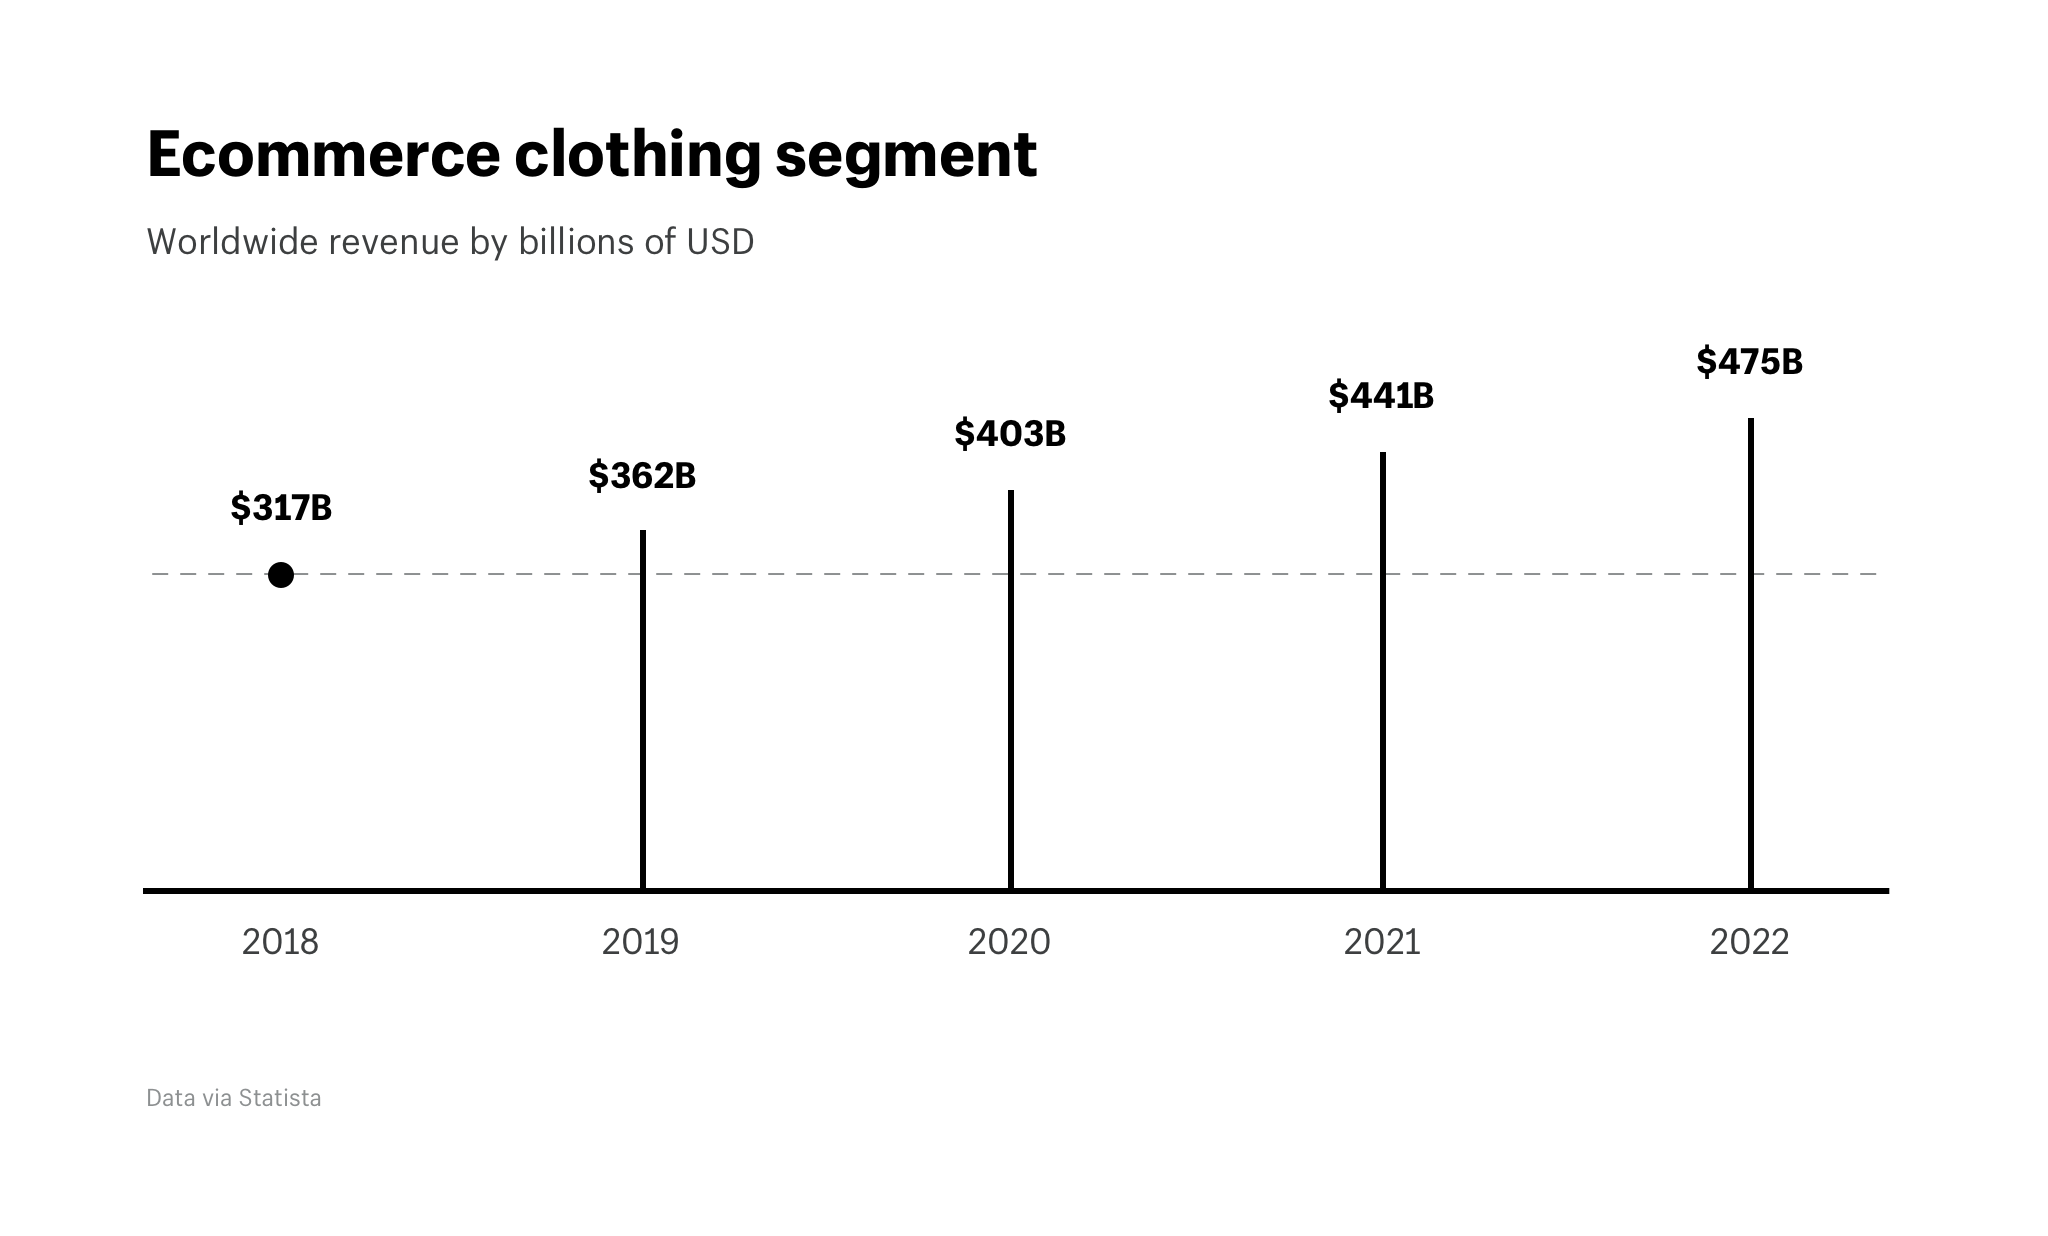 Ecommerce clothing segment worldwide revenue